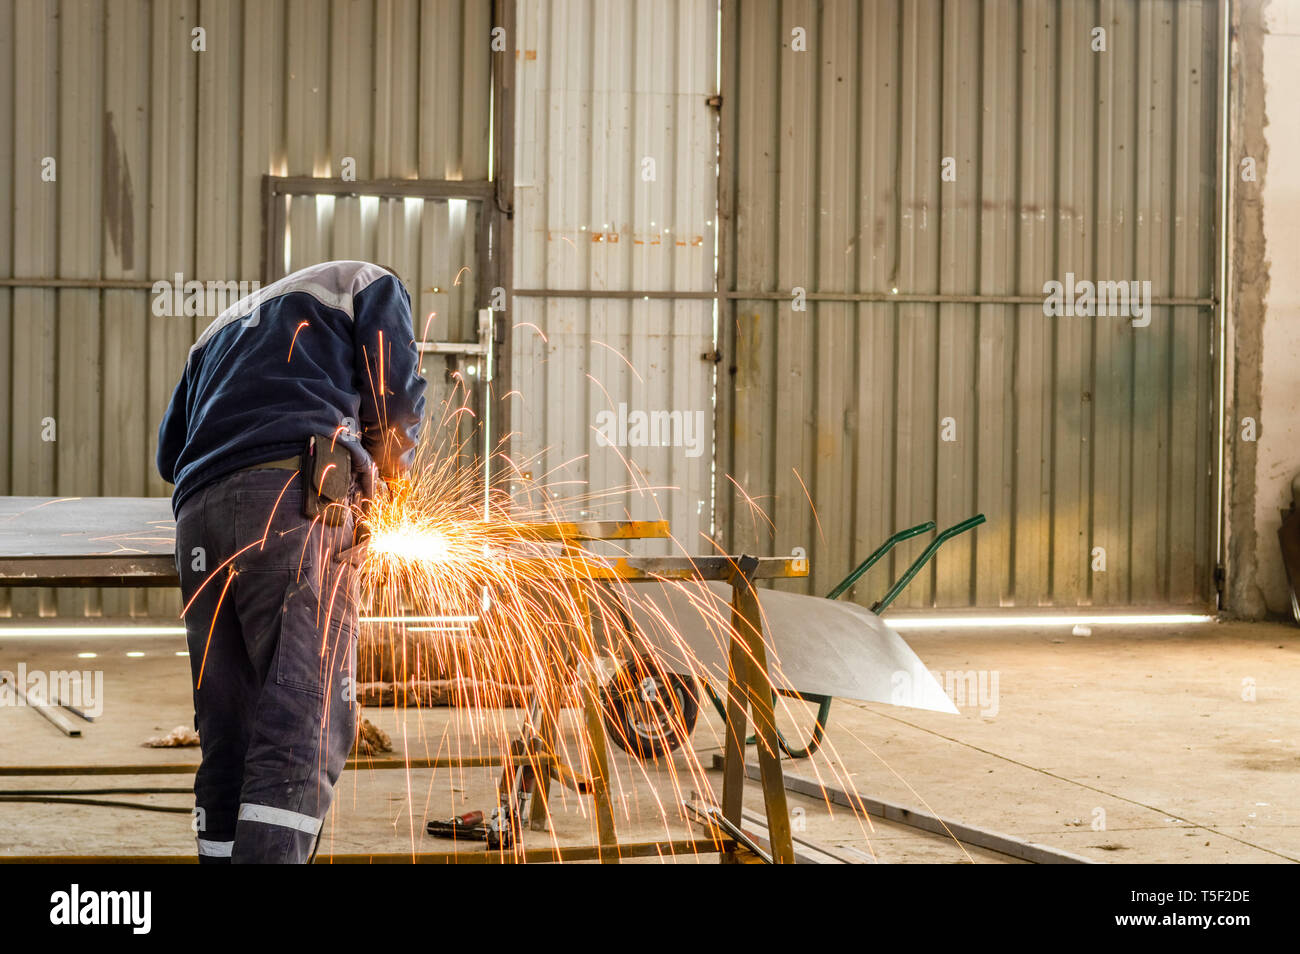 Heavy industry manual worker cutting metal with grinder in factory. - Stock Image